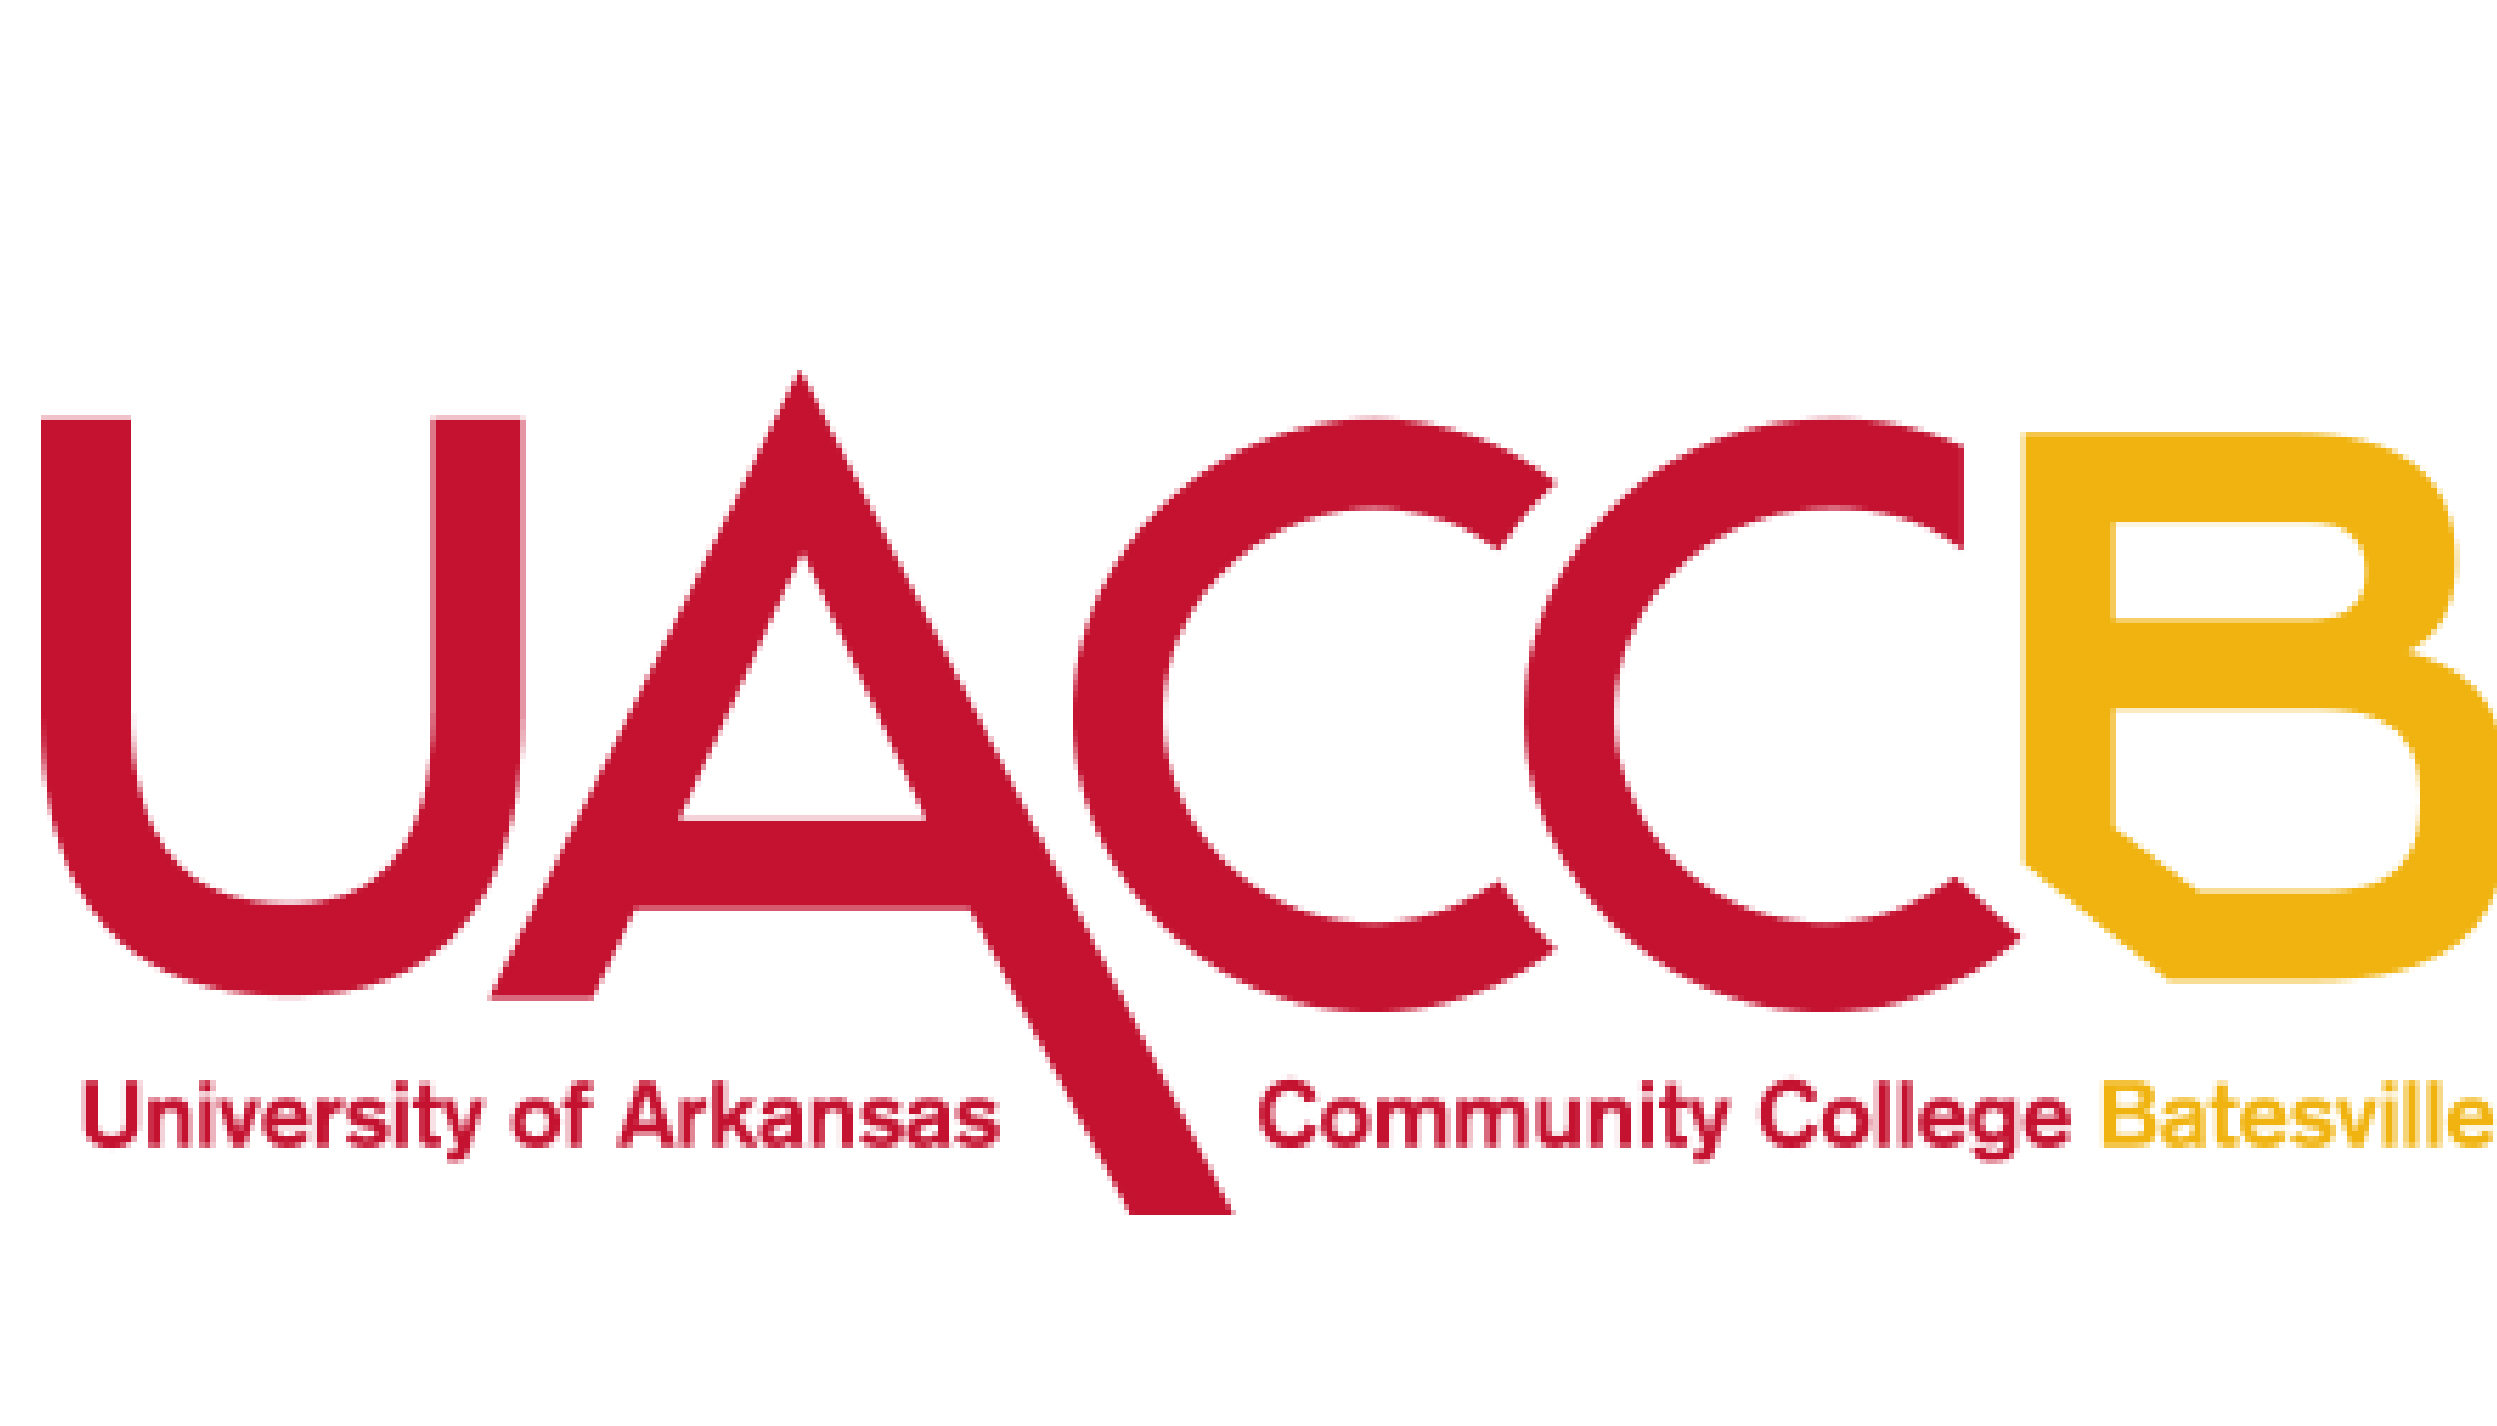 Community College at Batesville logo